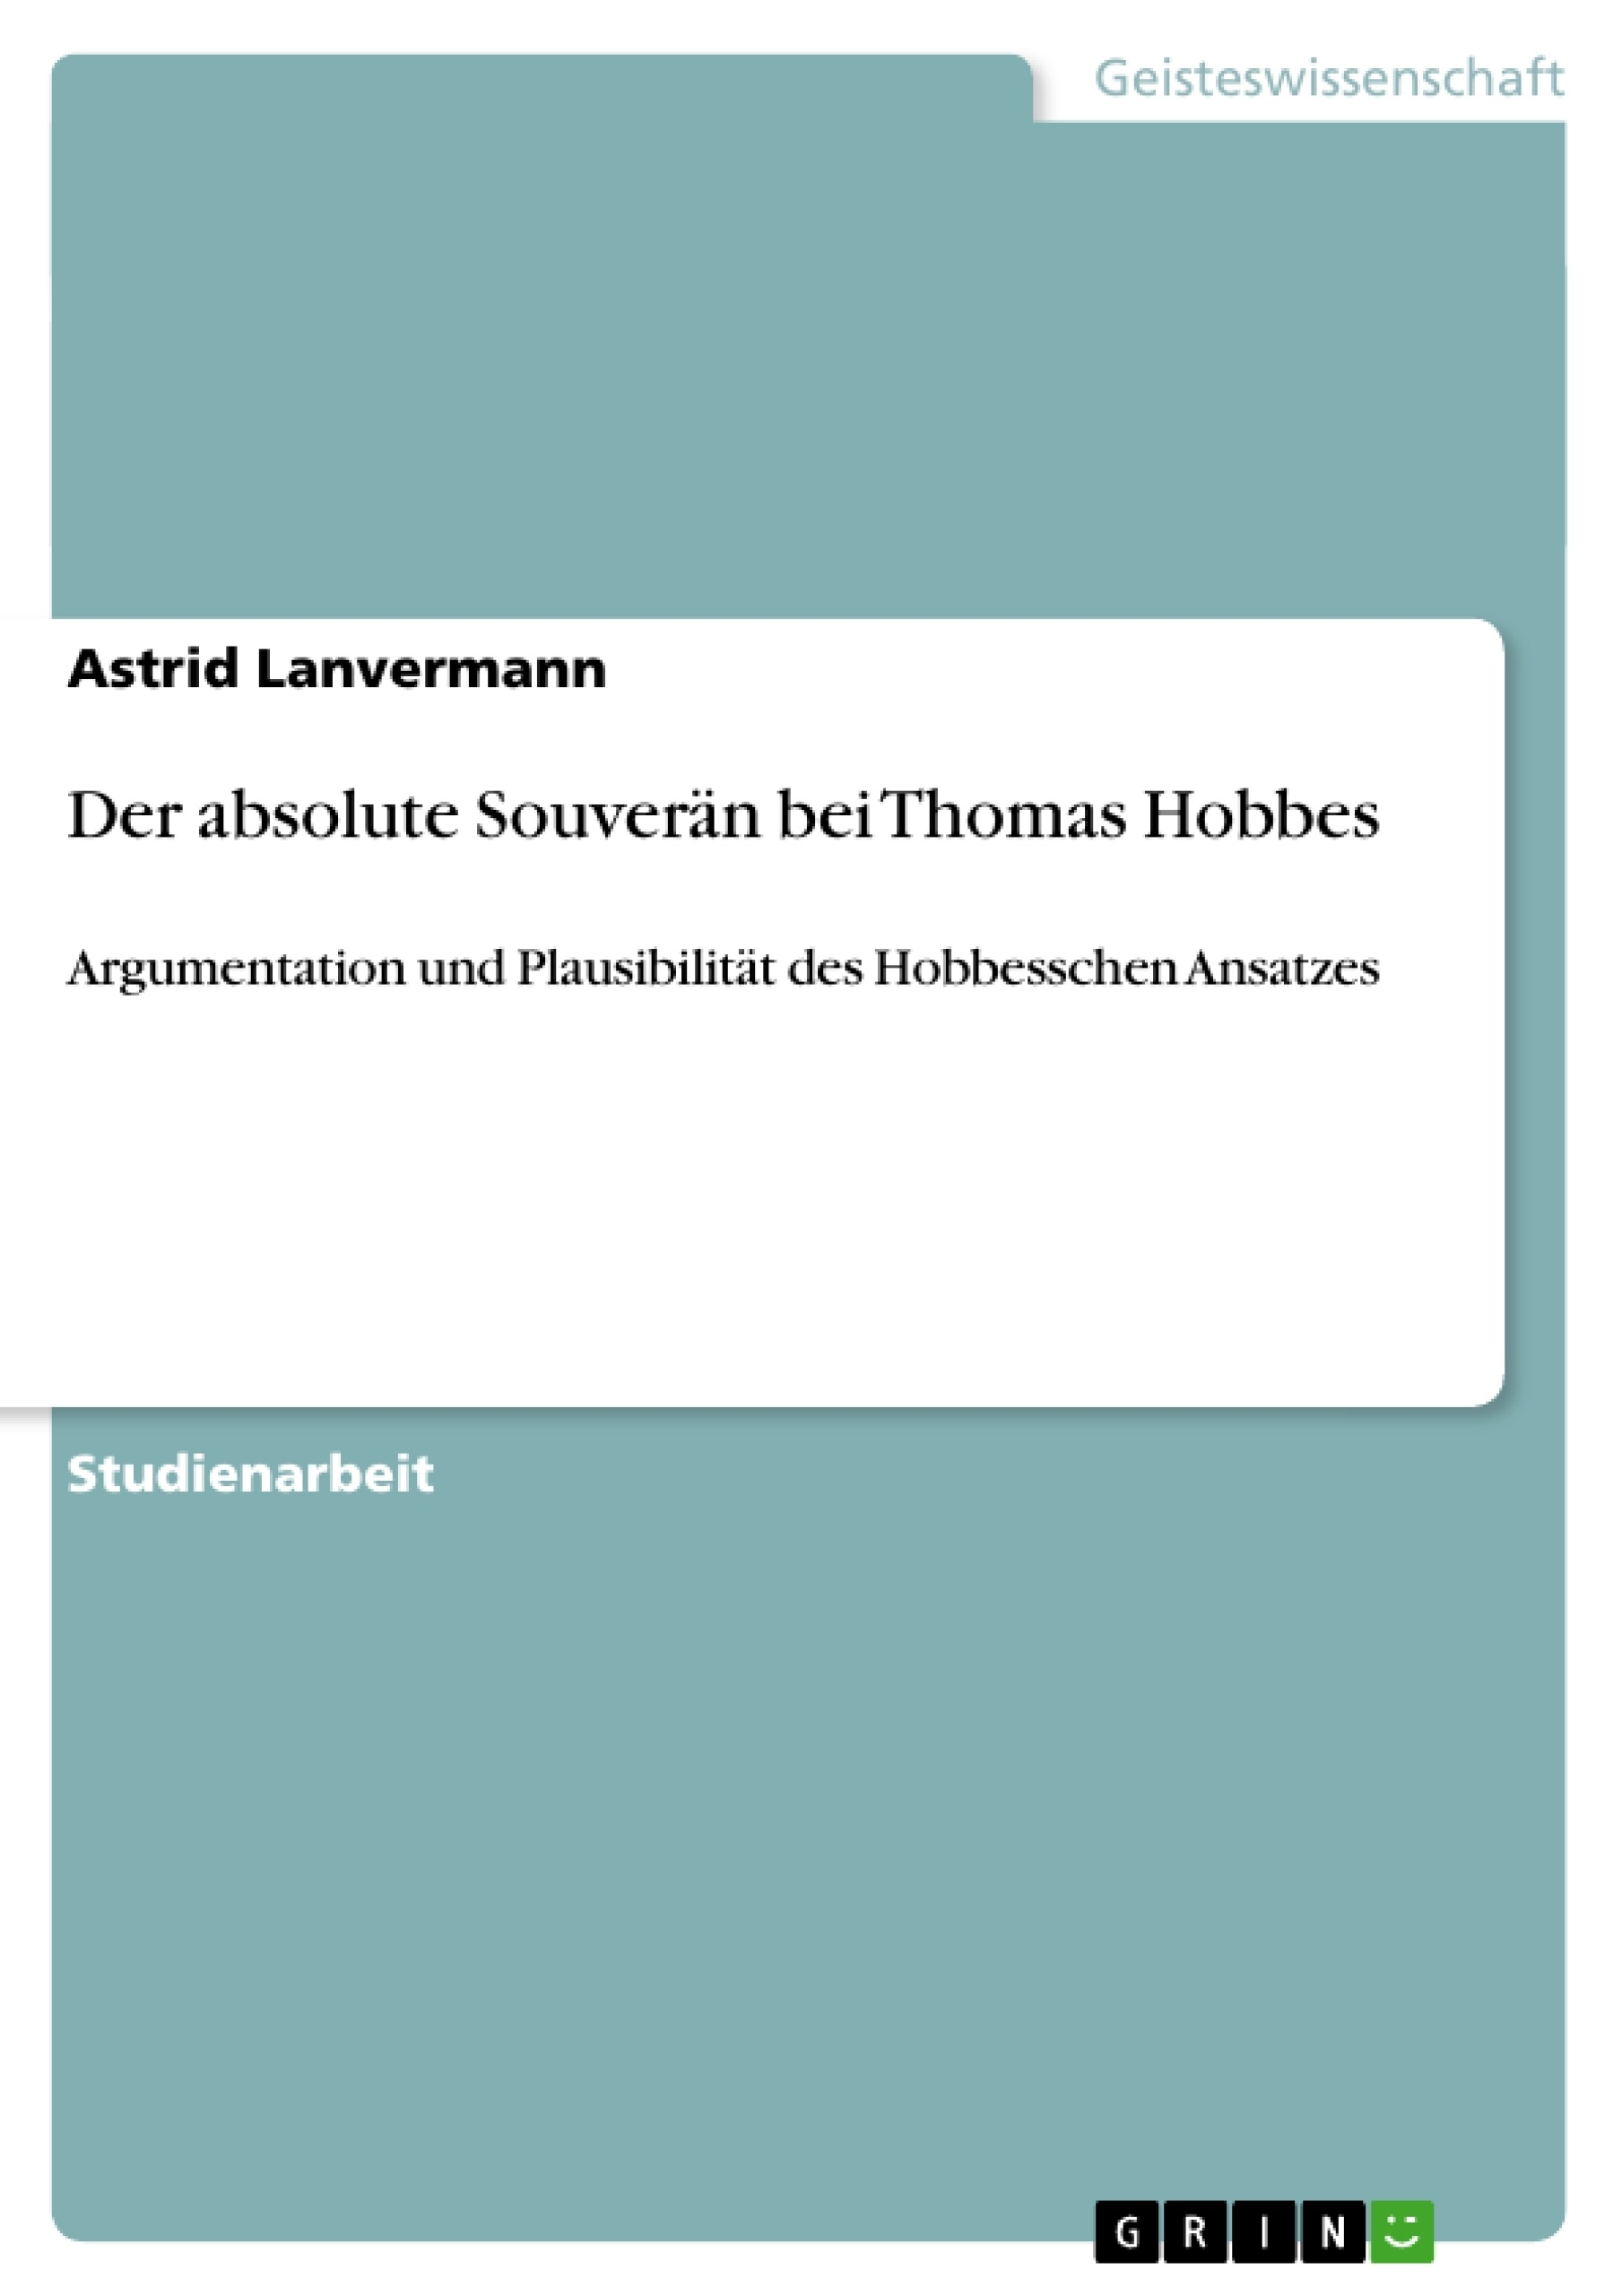 hobbes and absolute sovereignty essay Human rights are inherently an analysis of hobbes concept of absolute sovereignty paradoxical and changeable 4-1-2018 western philosophy - renaissance philosophy.